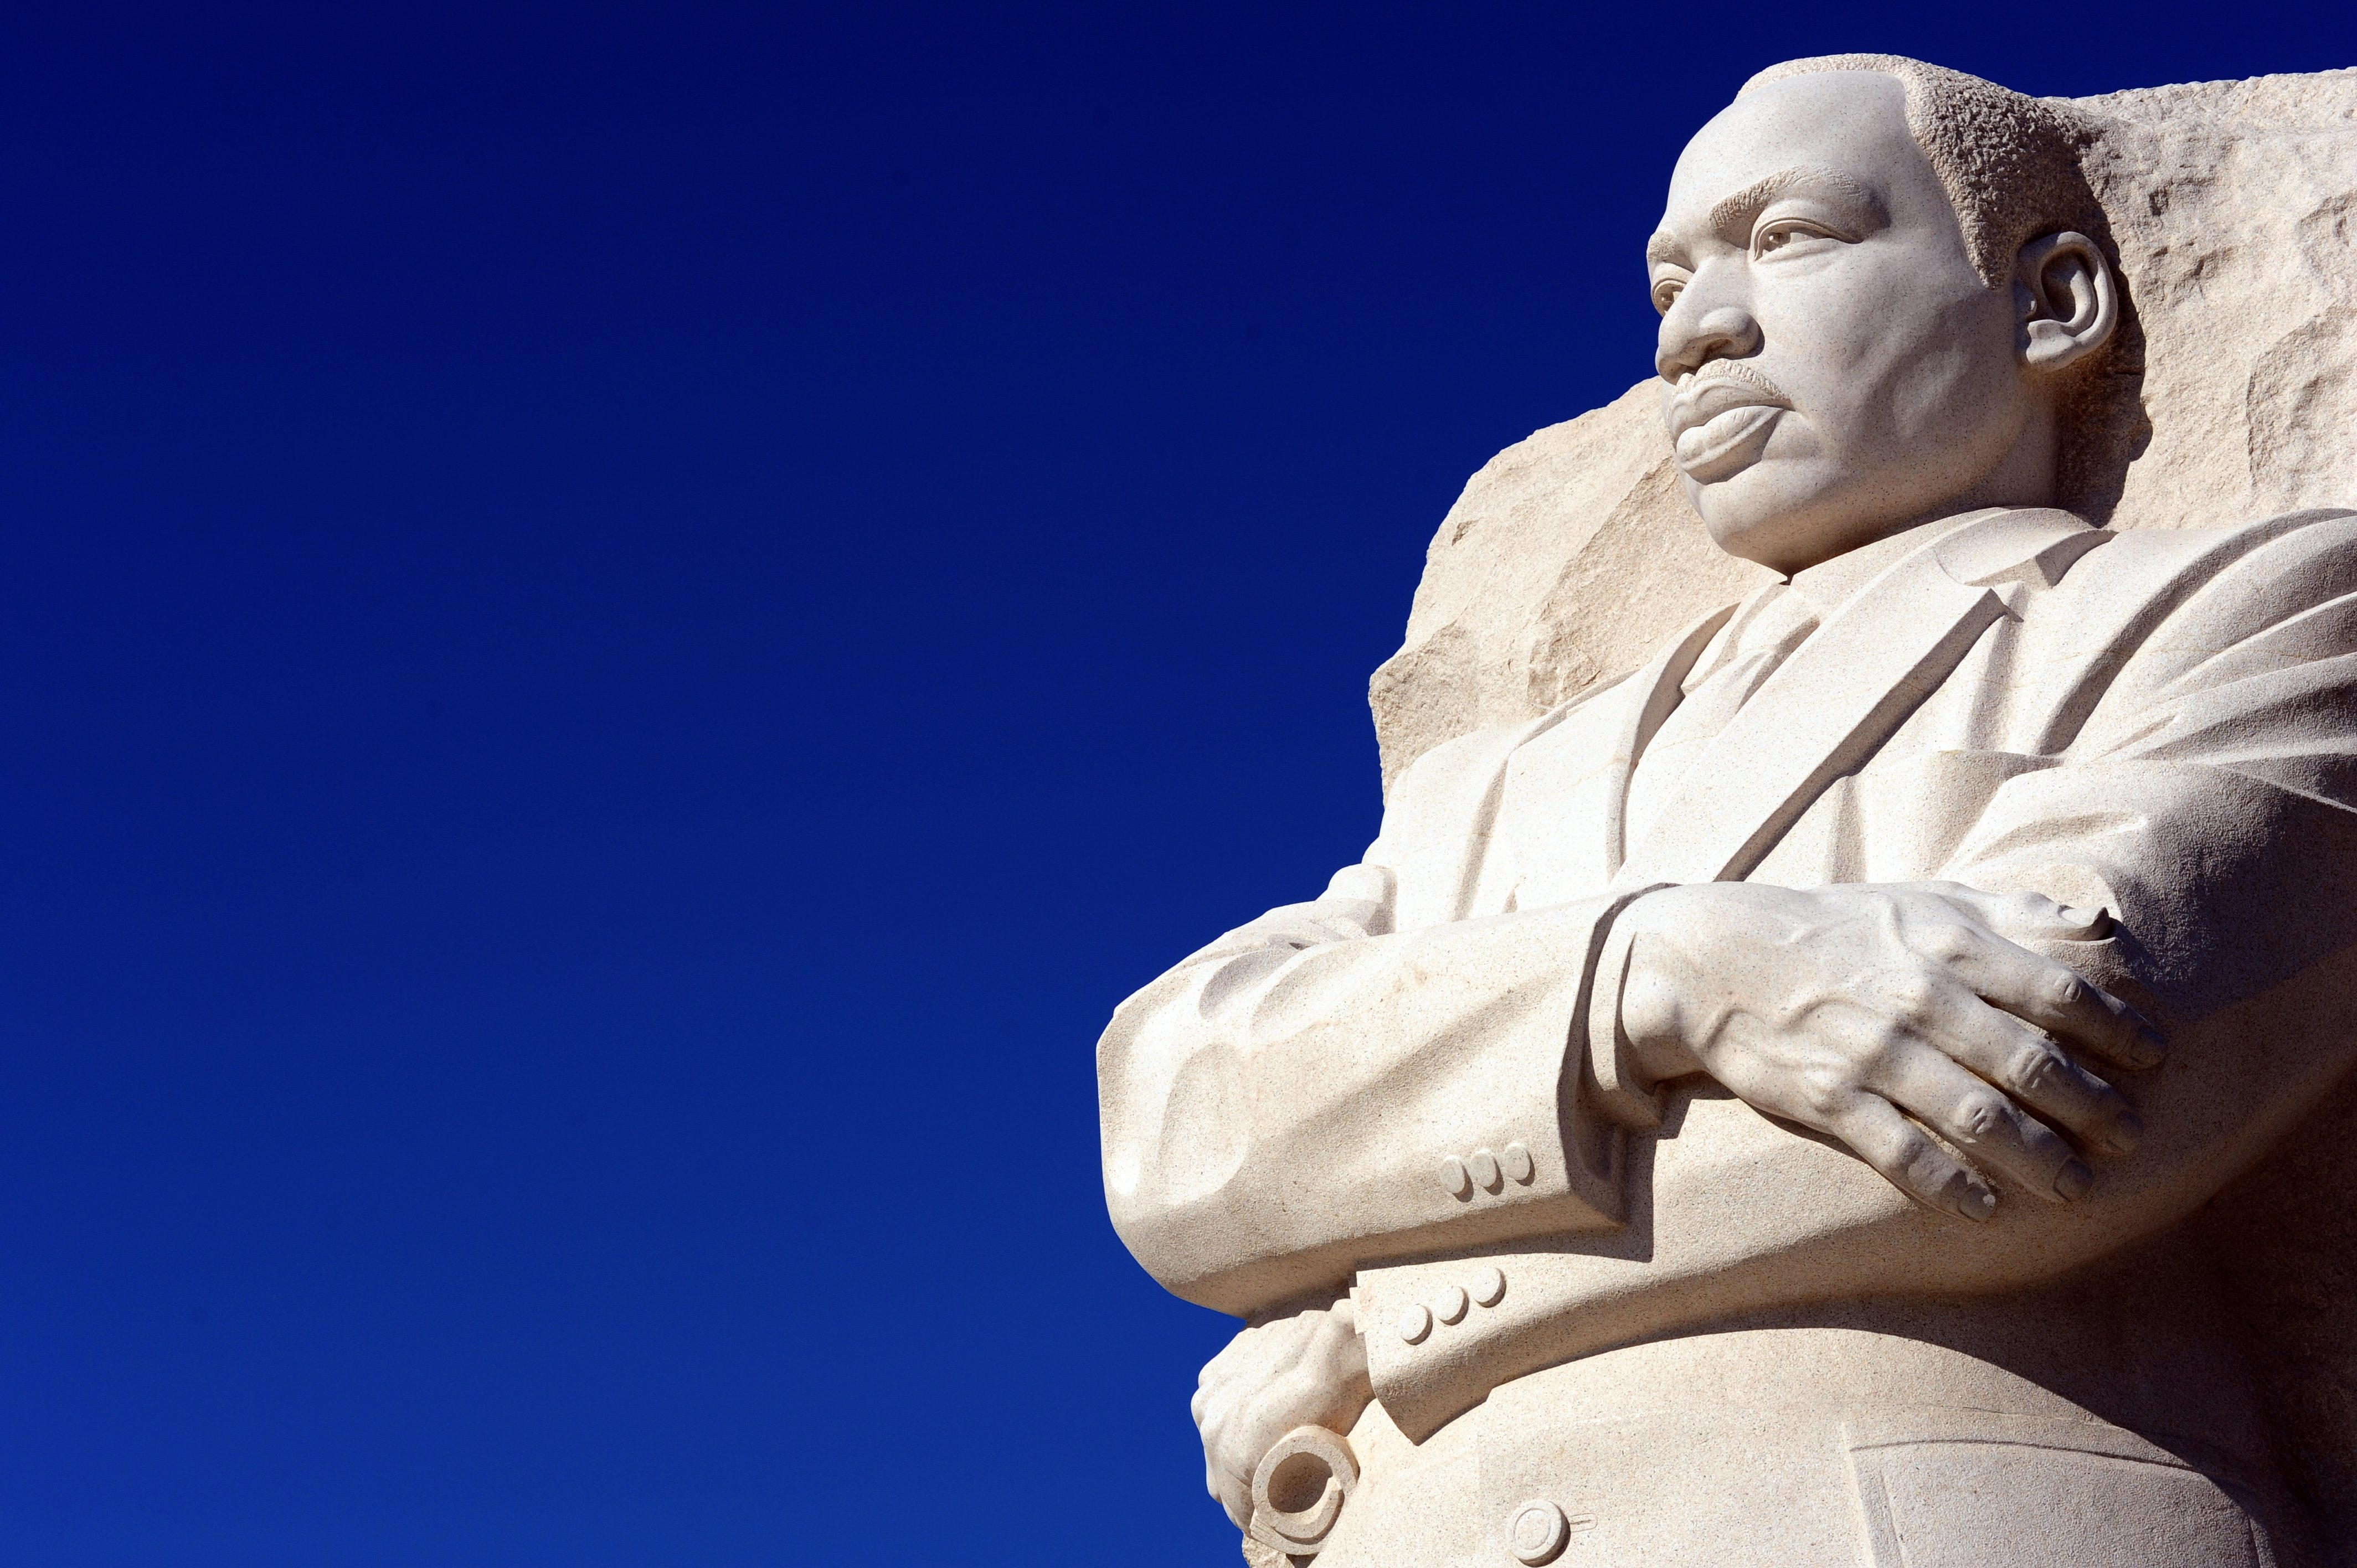 The Martin Luther King, Jr sculpture is seen at the MLK Memorial December 1, 2011 in Washington, DC. (KAREN BLEIER/AFP/Getty Images)